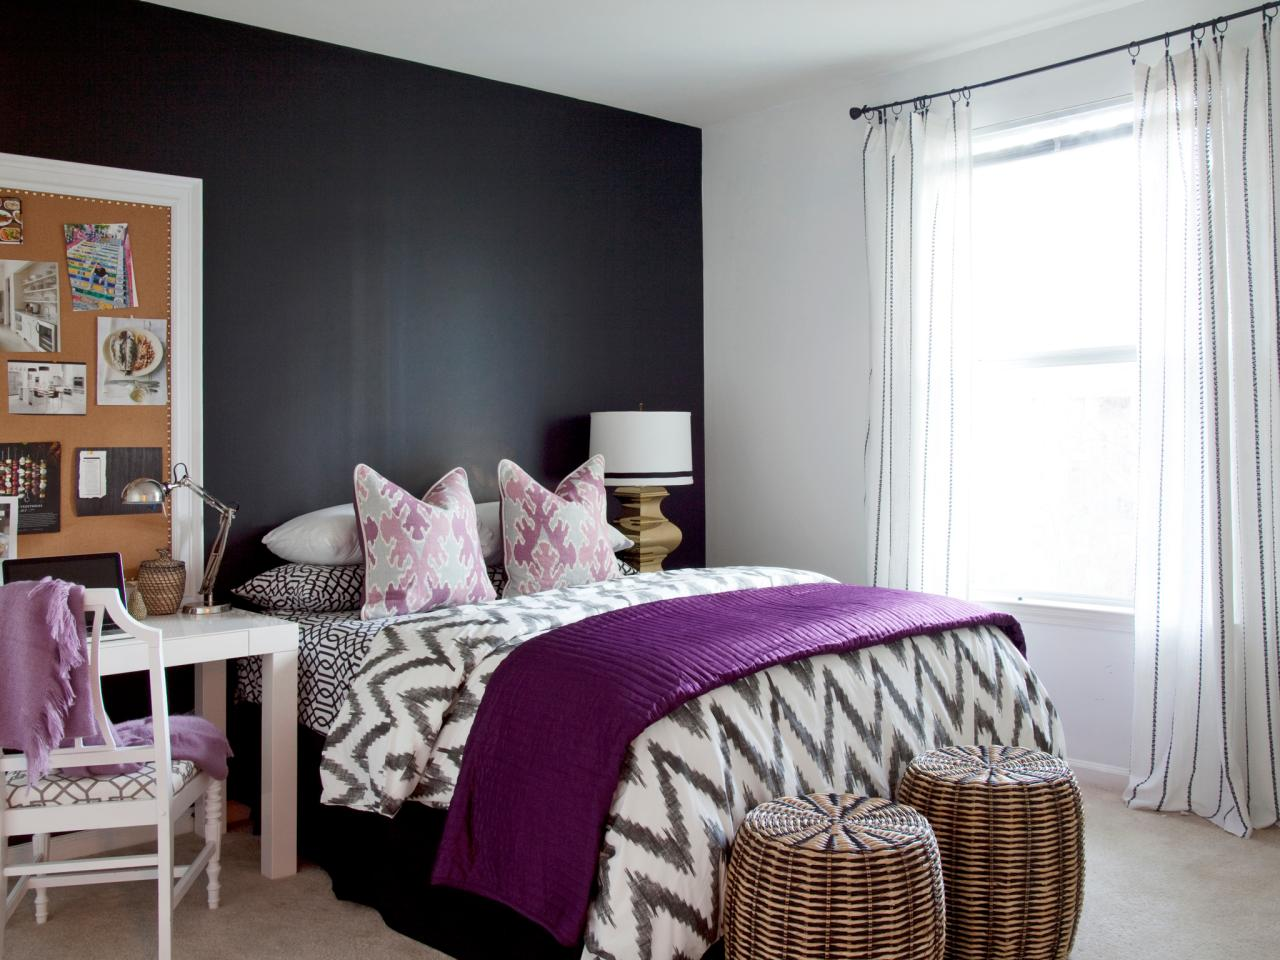 Black and white bedroom ideas for young adults Modern Bedroom Dark Violet Hikendip 13 Clever Blend Of Texture And Colour Ideas To Add Worth And